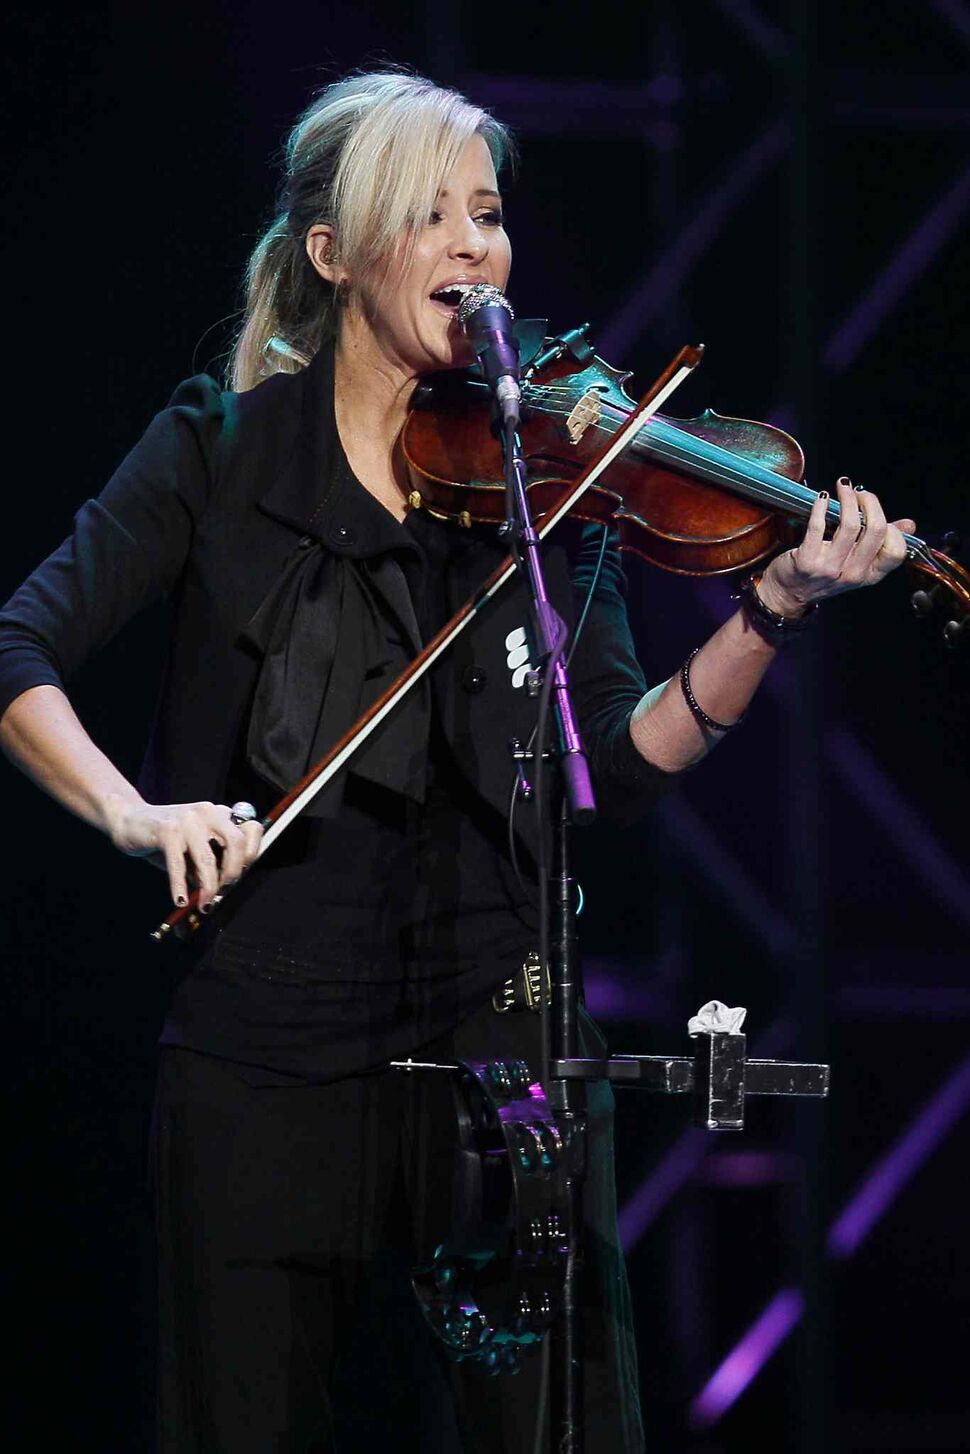 Martie Maguire sings and fiddles with the Dixie Chicks at the MTS Centre Tuesday. (JOHN WOODS / WINNIPEG FREE PRESS)